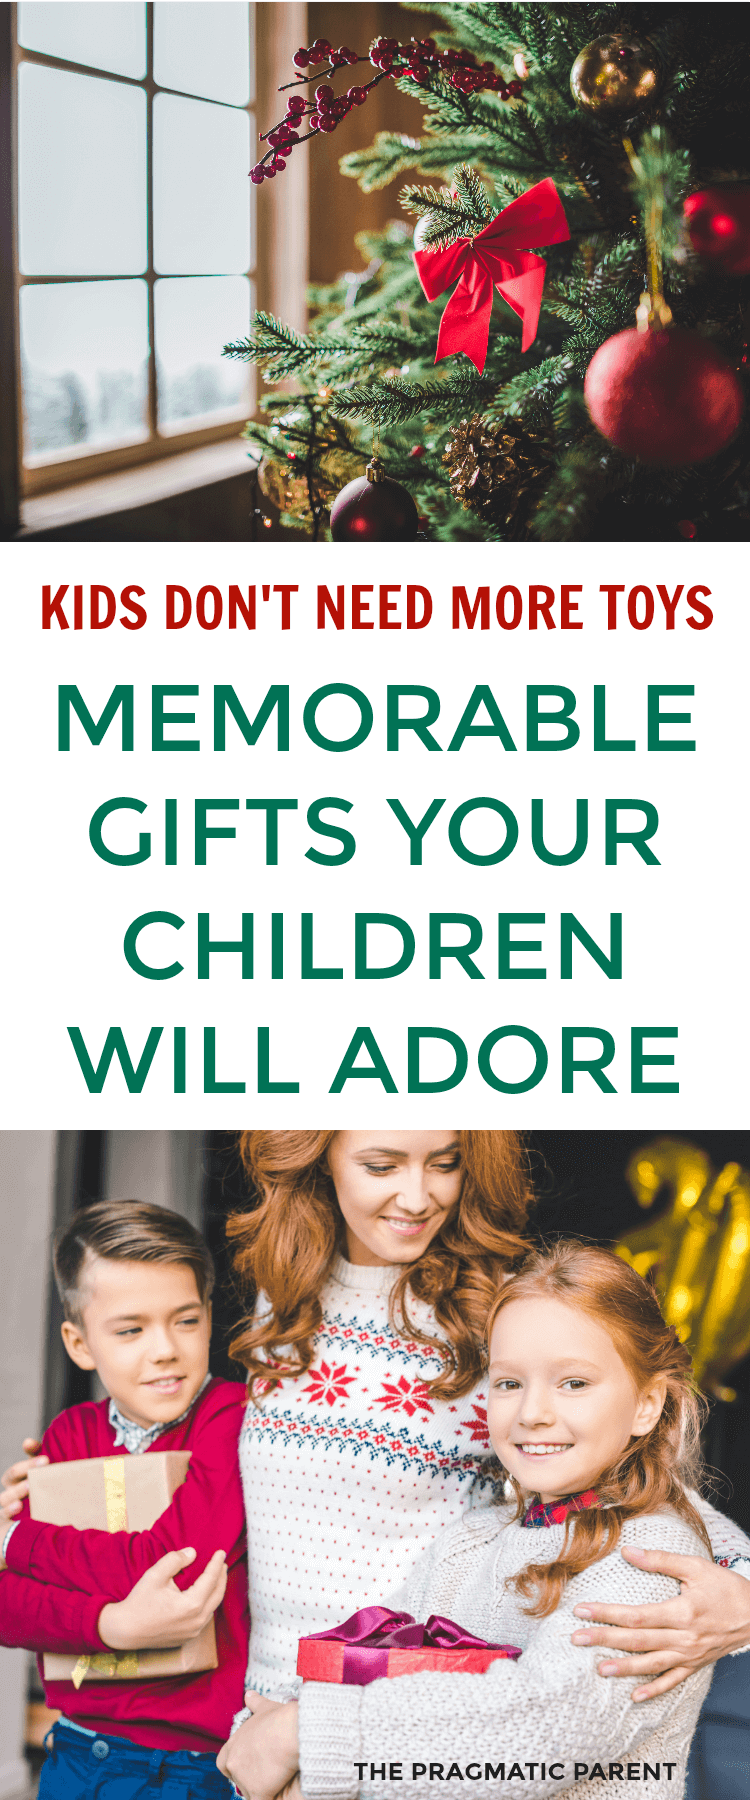 Memorable Experiences You Can Give To Your Children. Non Toy Gifts Kids Will Love. Don't Want to give my kids more toys this christmas, what else will they love?